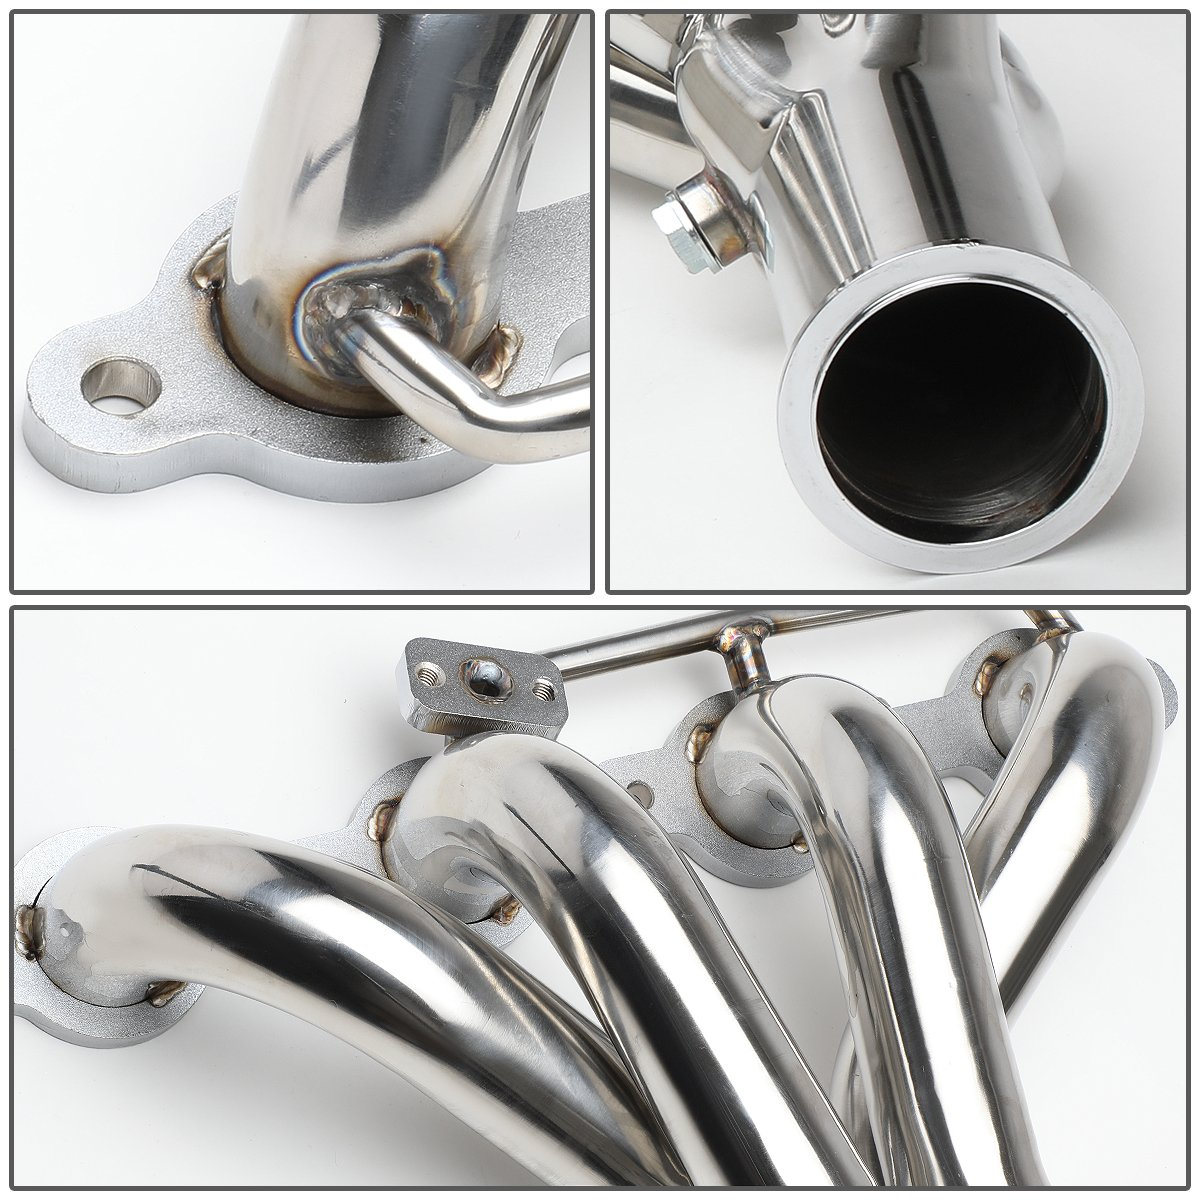 DNA Motoring HDS-CCV97C5+XP Stainless Steel Exhaust Header Manifold with X-Pipe